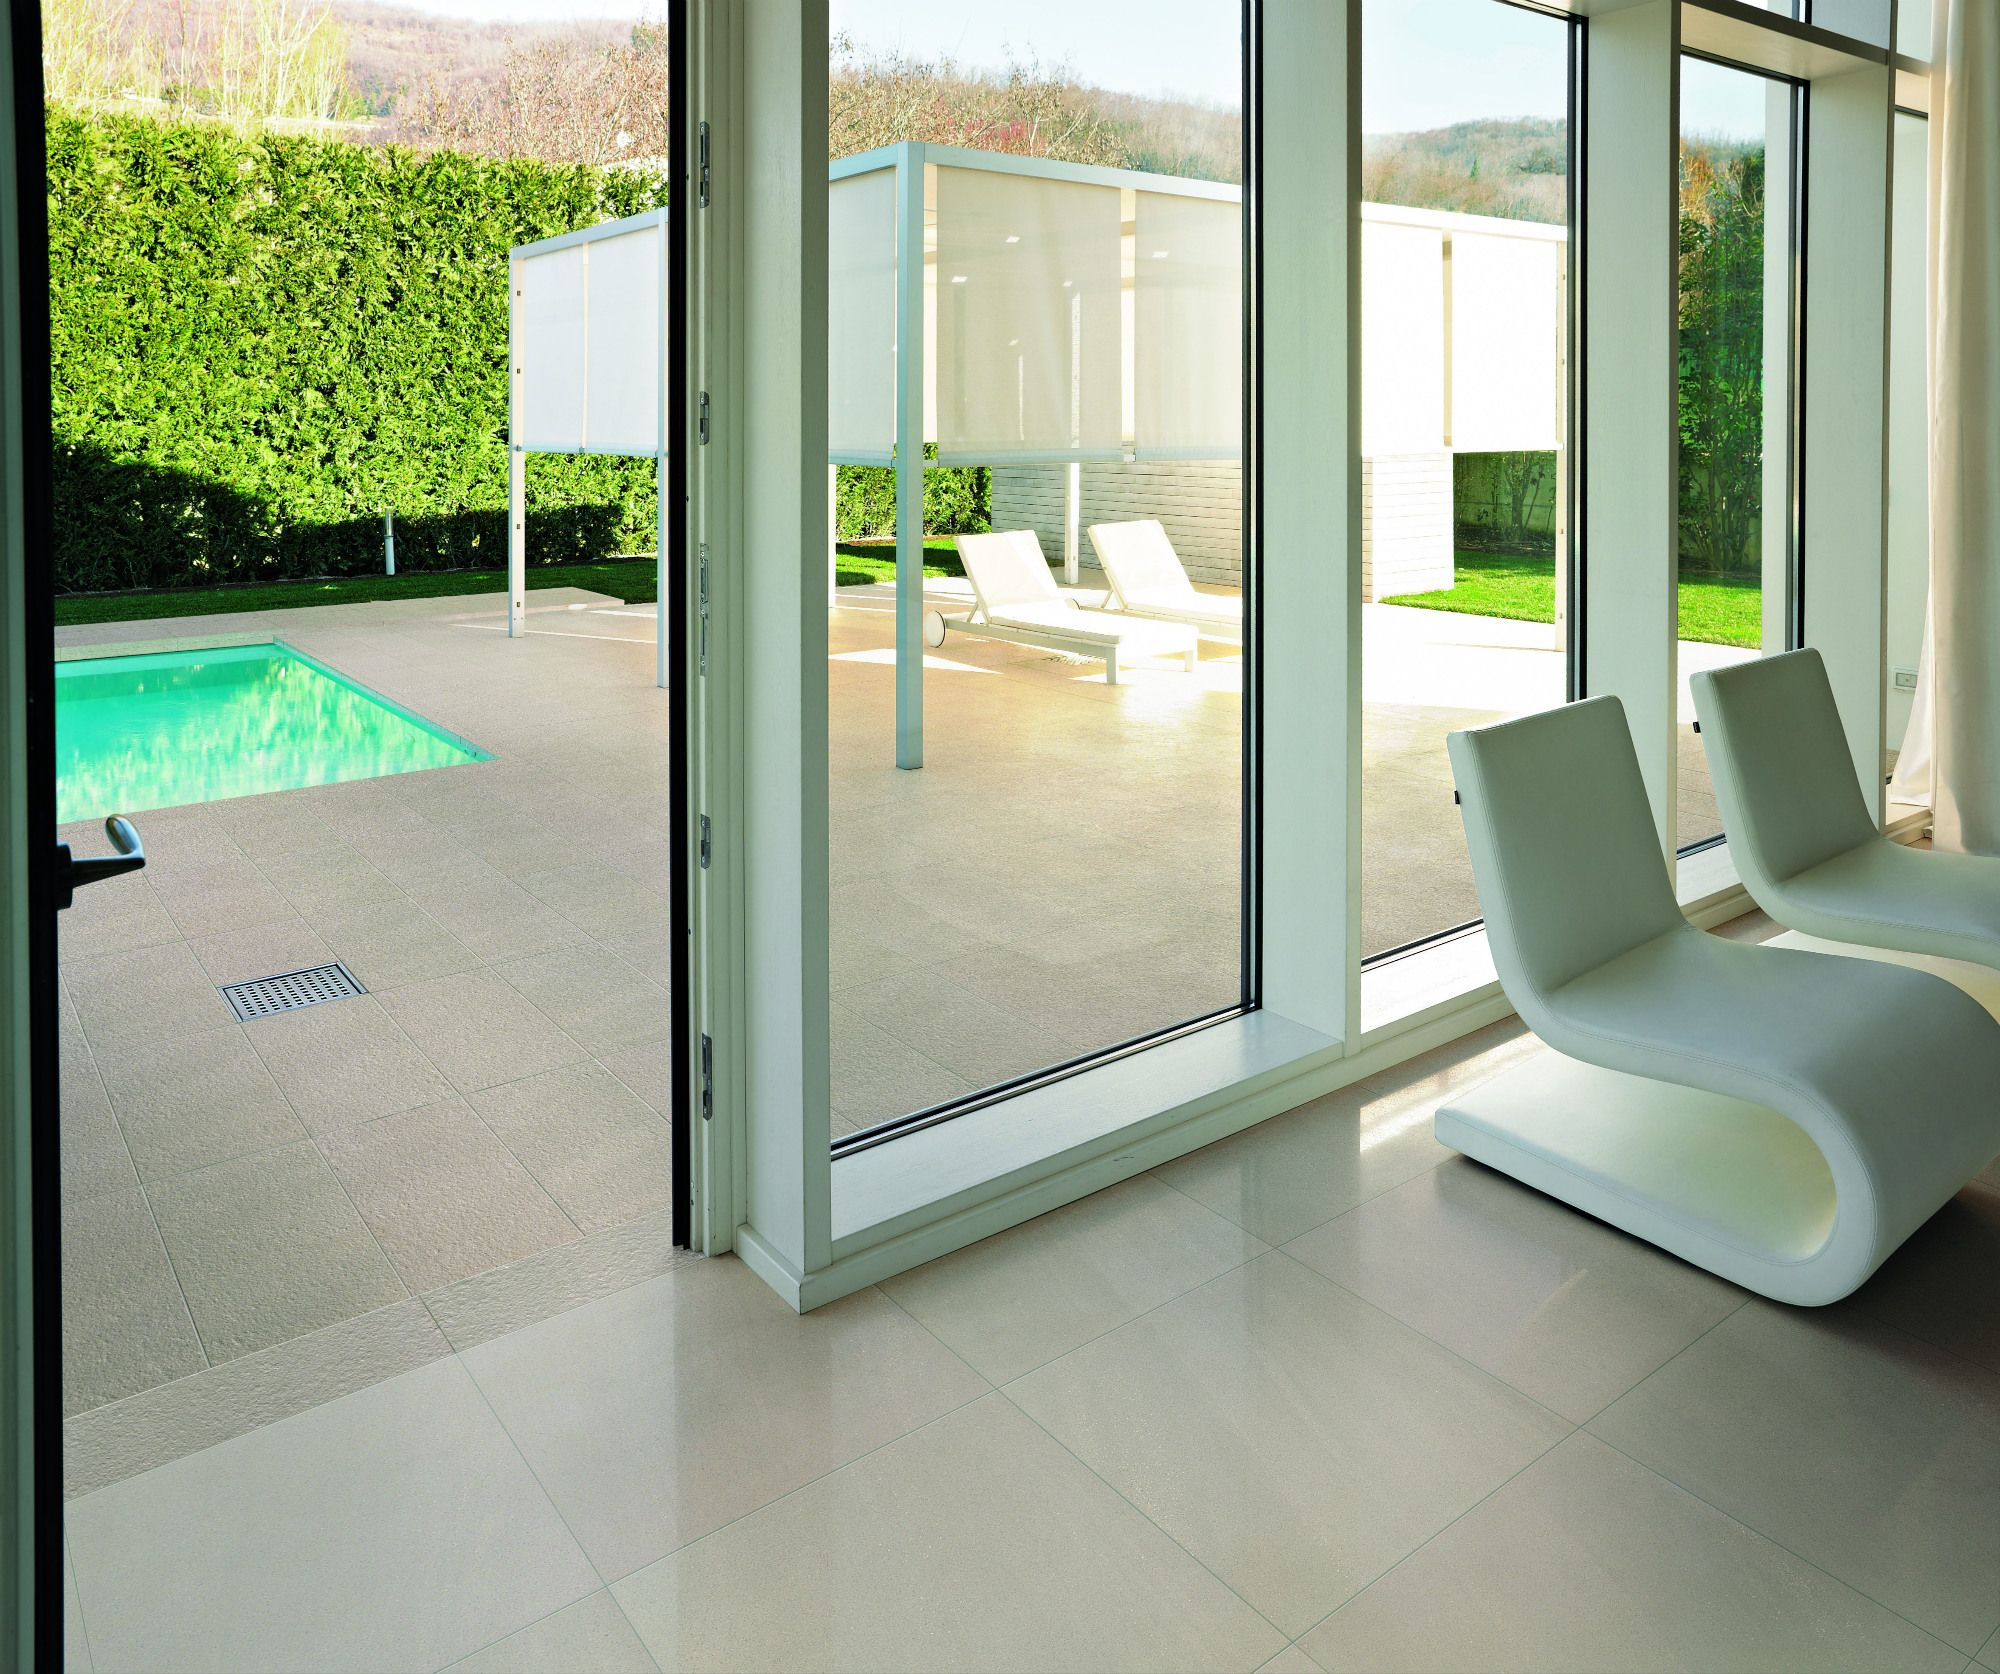 Outside Floor Tiles: For Ever Rock Strutturato 30 X 60 Cm* / Inside Floor  Tiles: For Ever Rock Lappato 60 X 60 Cm A Wonderful Tile To Use Inside And  Out.